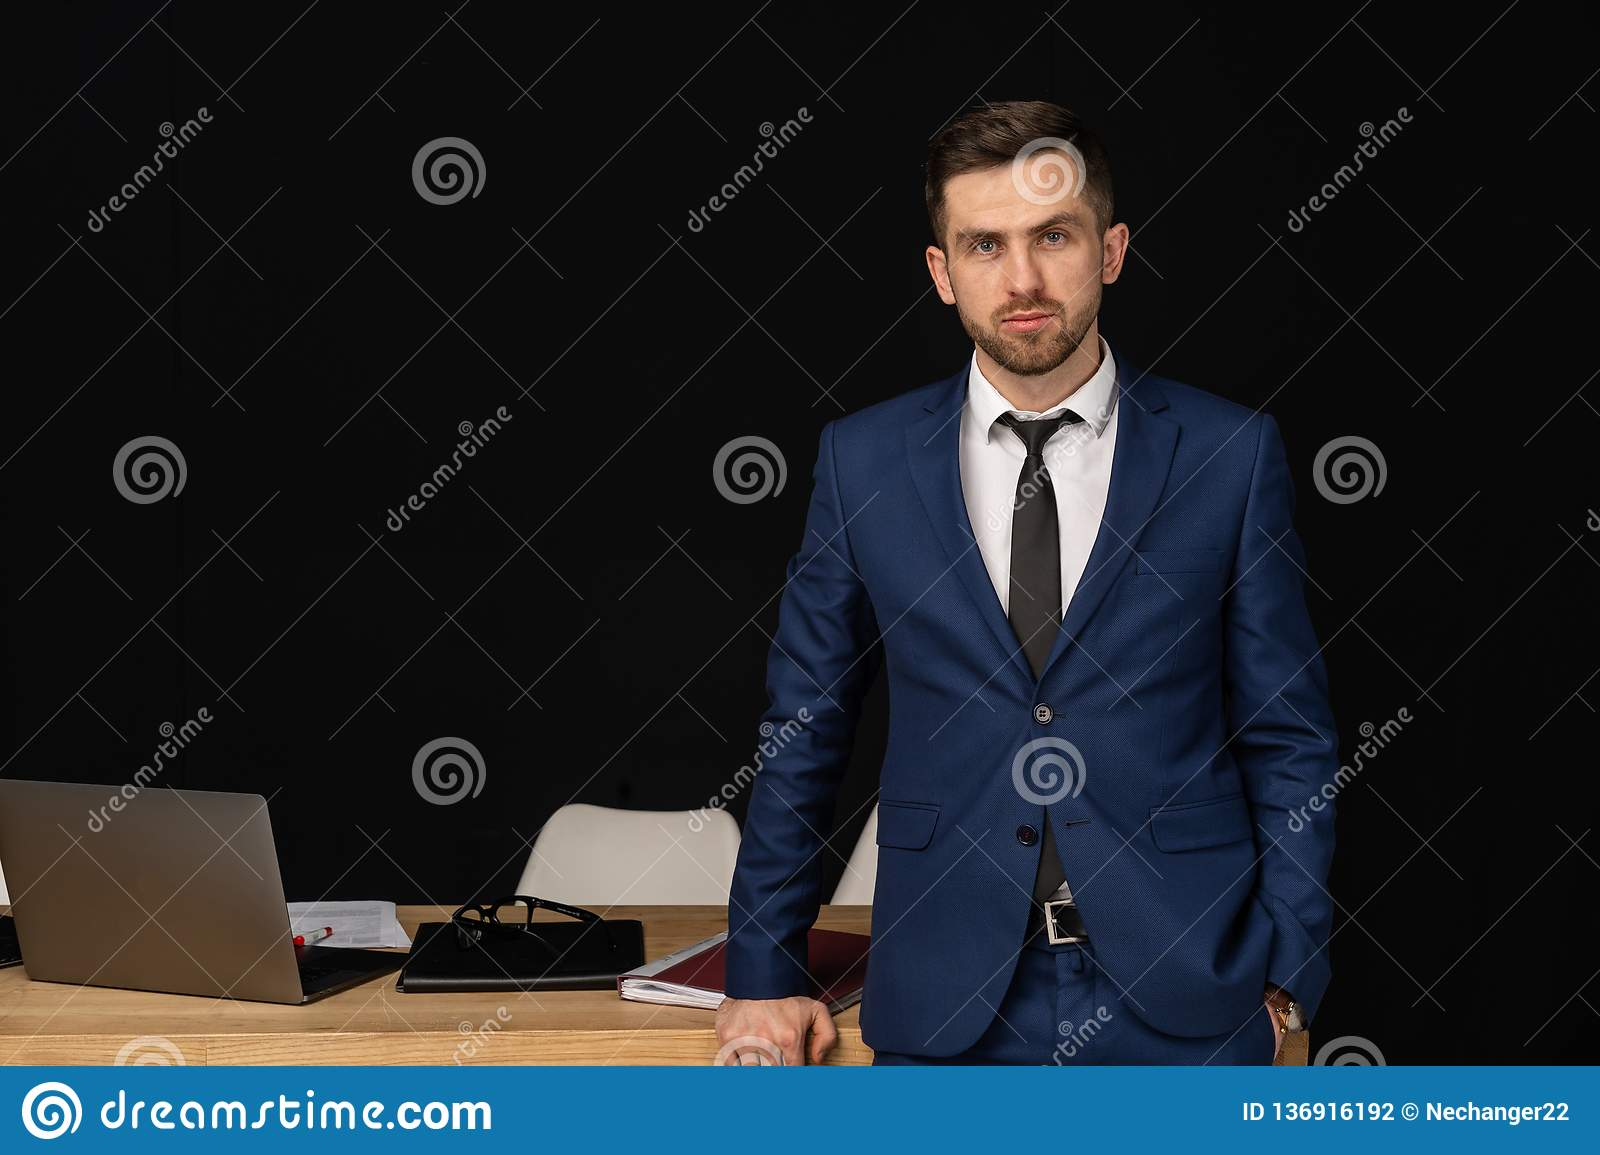 Half length portrait of middle aged successful business man